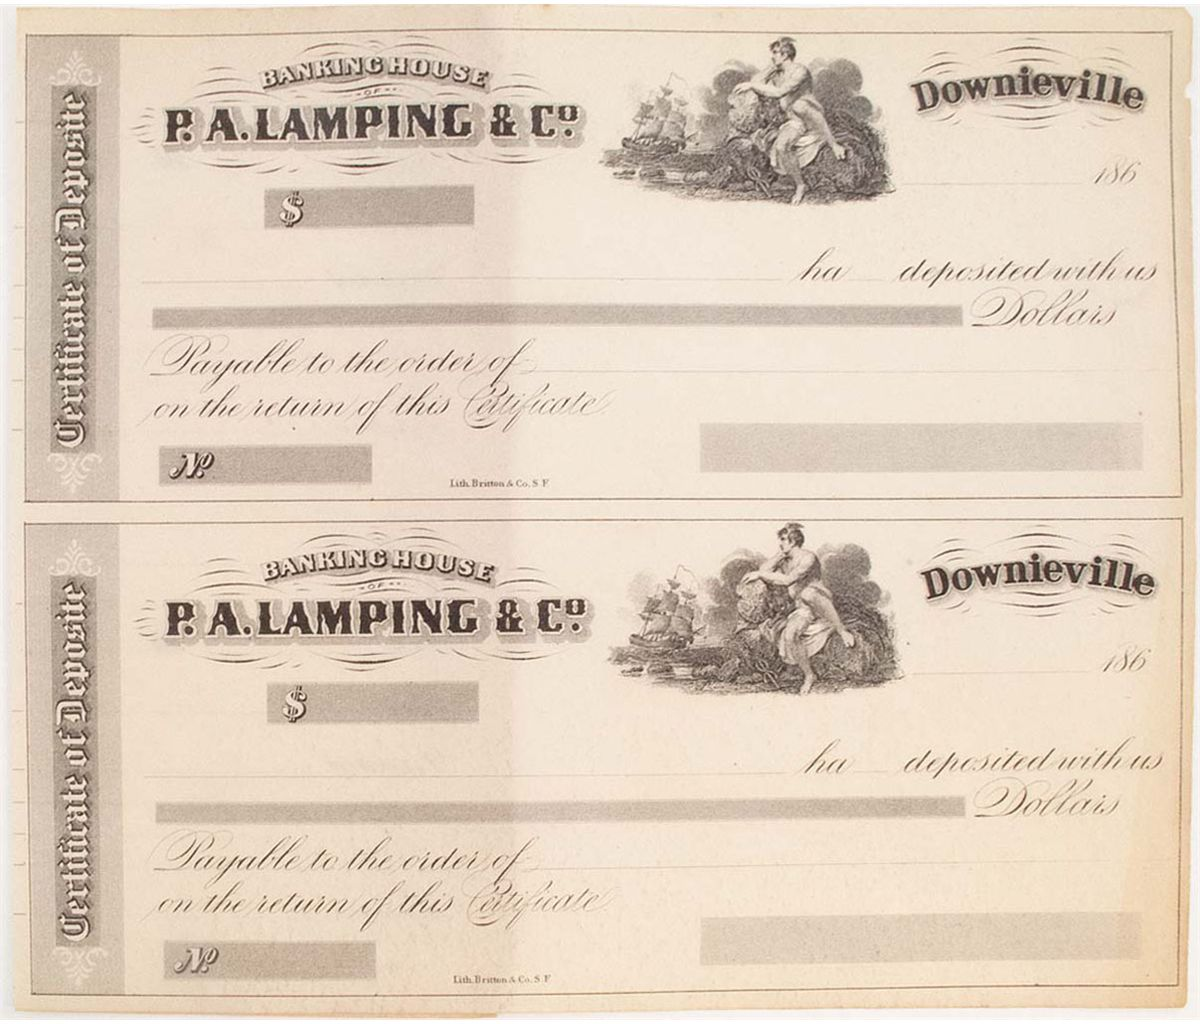 Certificate of depositsdownieville ca lot of 2unused banking certificate of depositsdownieville ca lot of 2unused banking house pa lamping co certif xflitez Images